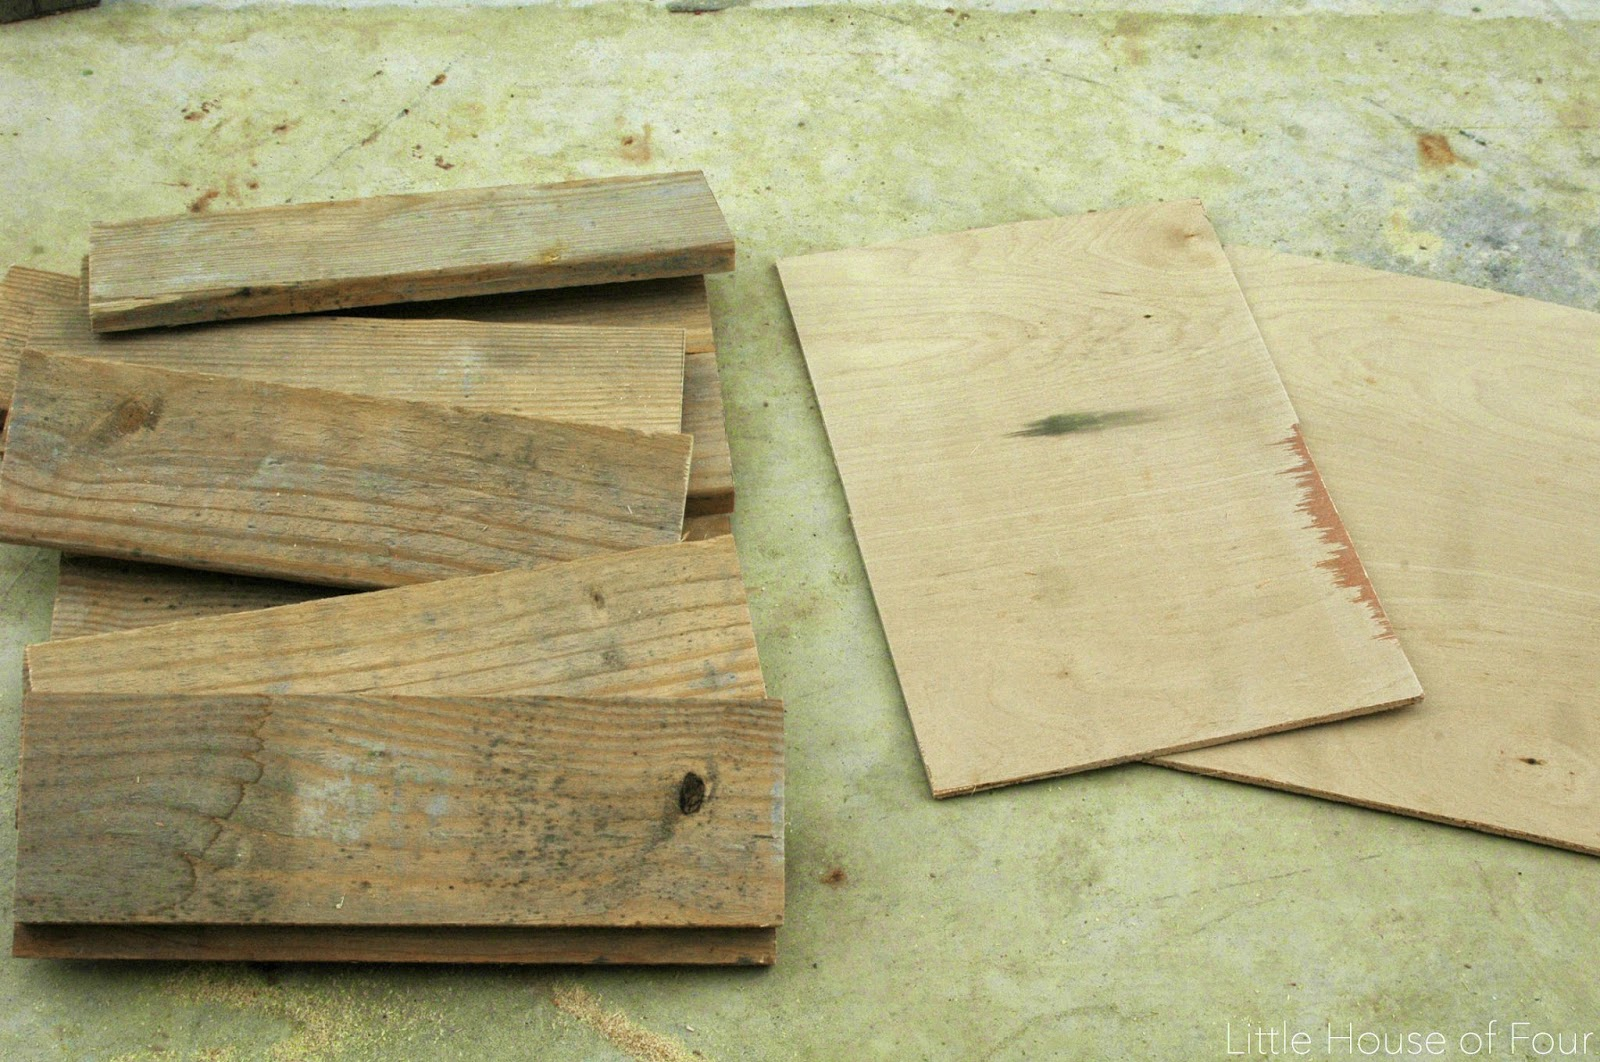 Diy Rustic Frame Diy Rustic Pallet Frames Little House Of Four Creating A